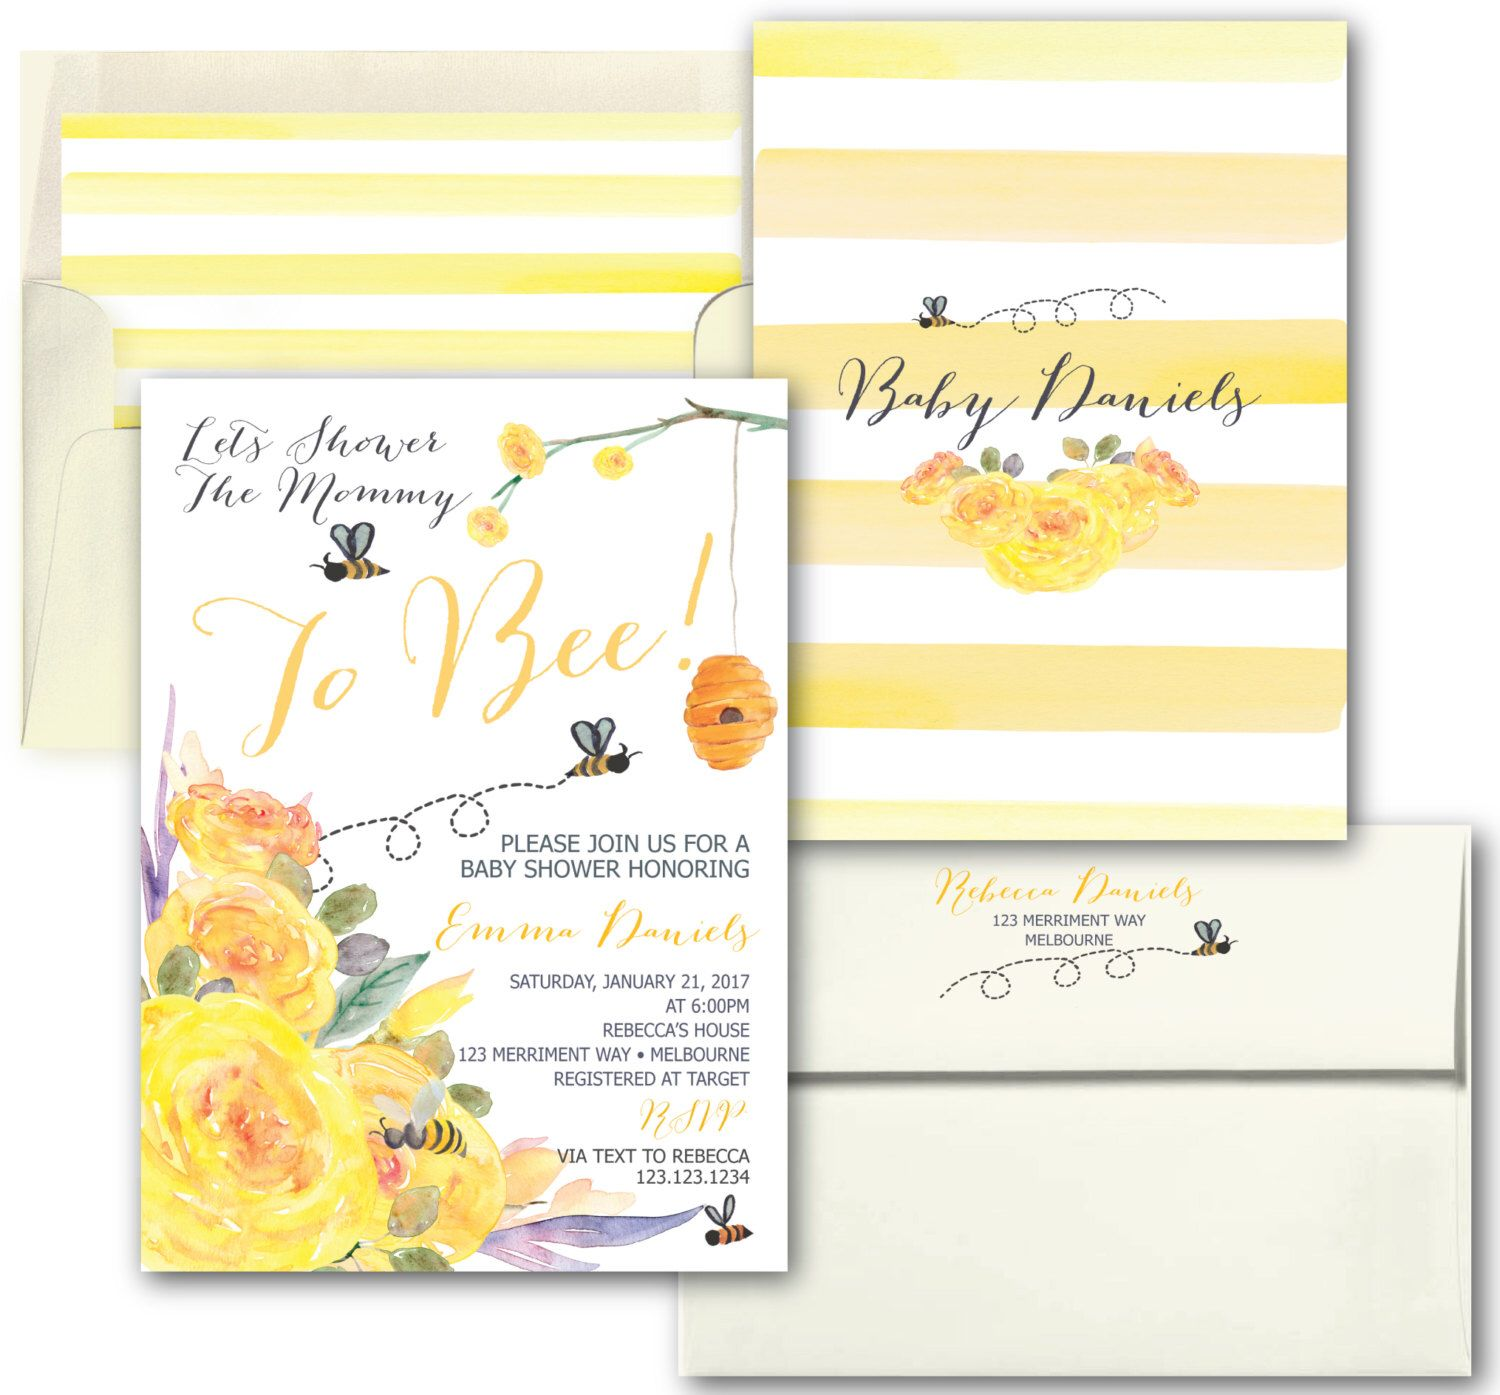 Bee baby shower invitation yellow baby shower invitation bee baby shower invitation yellow baby shower invitation stripes floral bees black watercolor melbourne collection filmwisefo